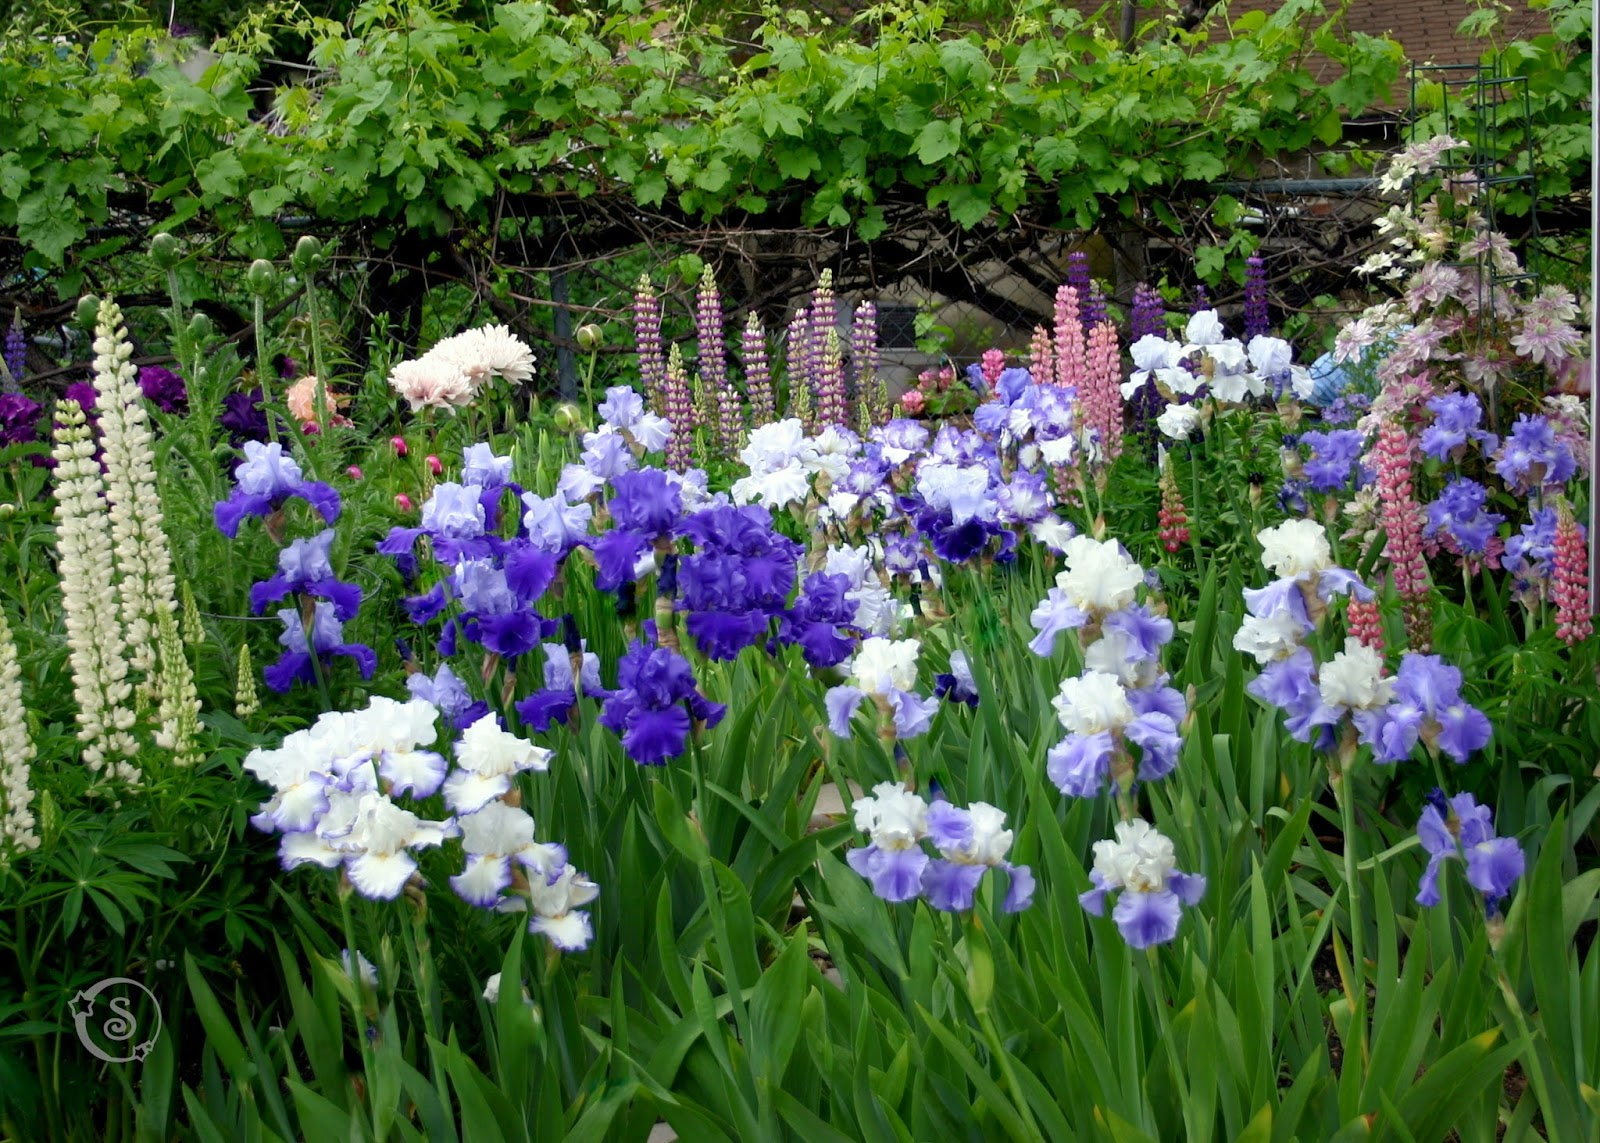 World of irises talking irises tall bearded irises in your the blue iris bed tall bearded irises queens circle pledge allegiance stairway to heaven victoria falls proud tradition altruist izmirmasajfo